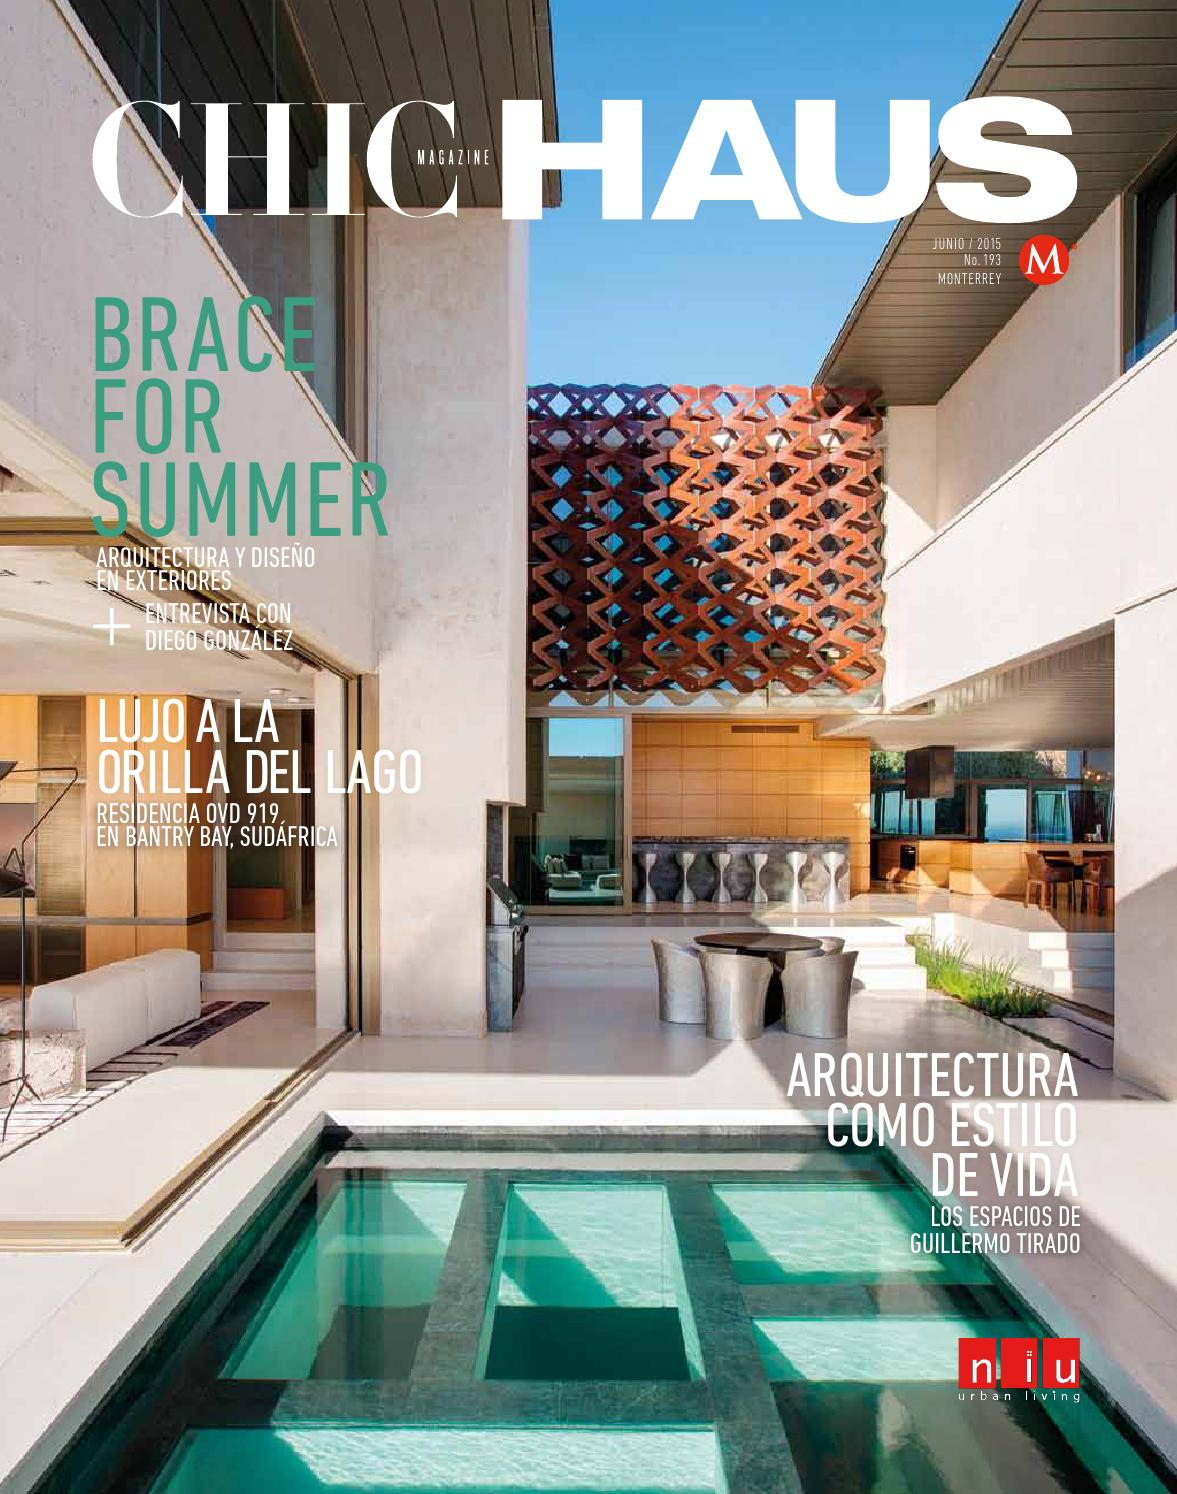 Chic Haus Monterrey N M 204 May 2016 By Milenio Diario  # Saqqara Muebles Y Decoracion